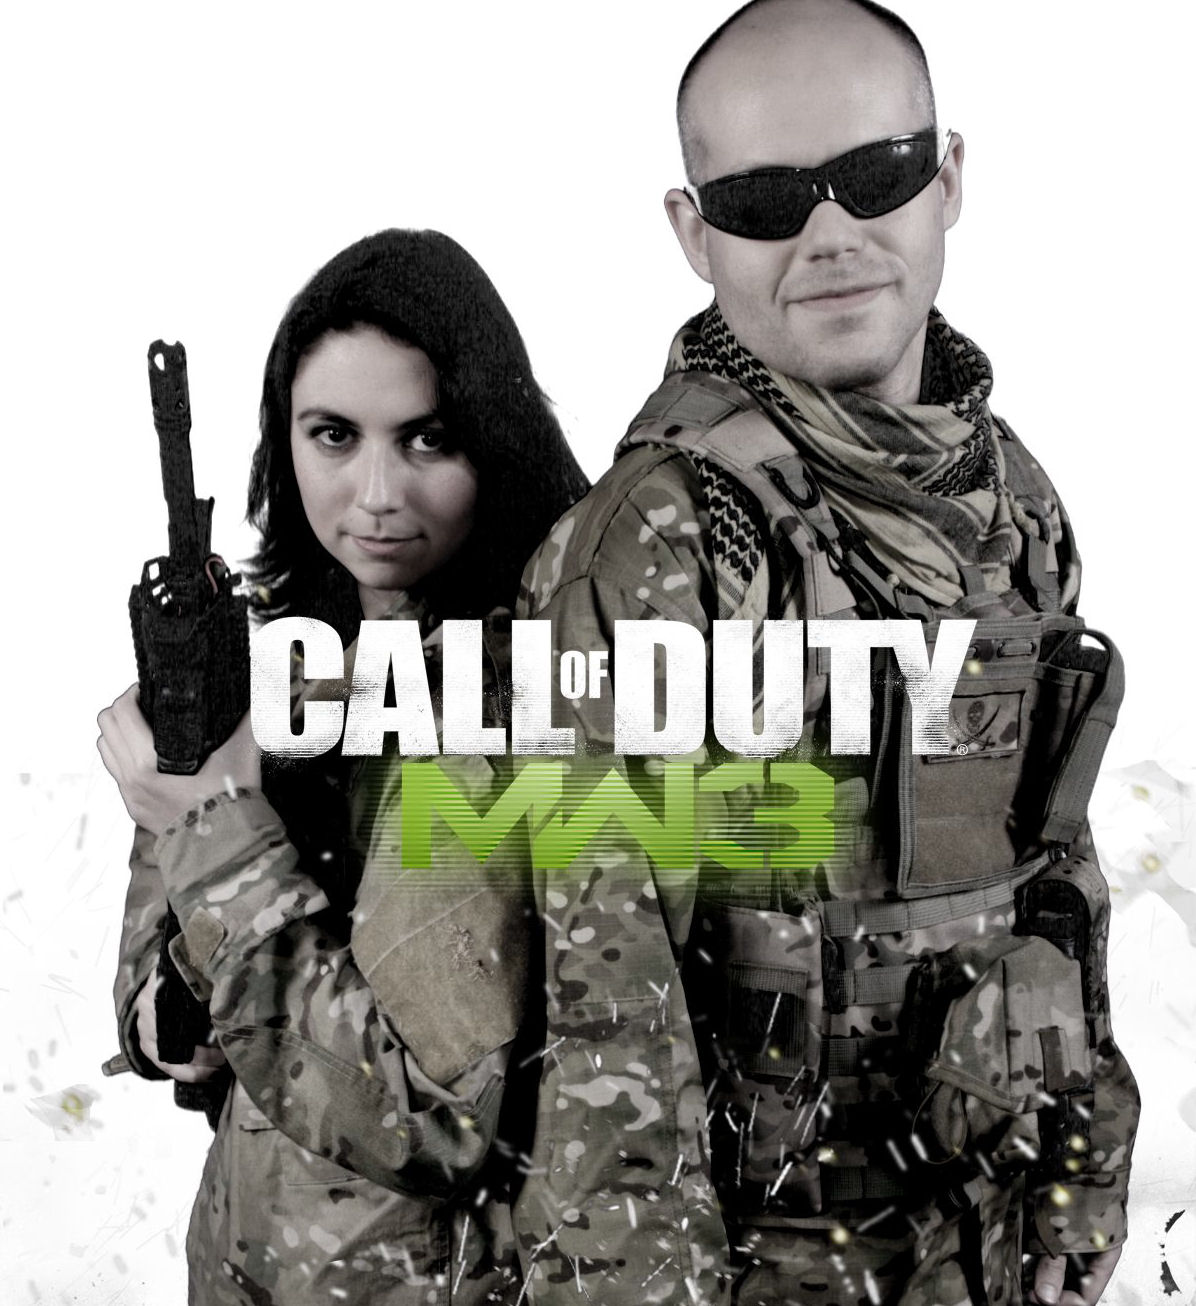 Debbie and Nick in costume for an alternate Call of Duty Modern Warfare 3 box cover